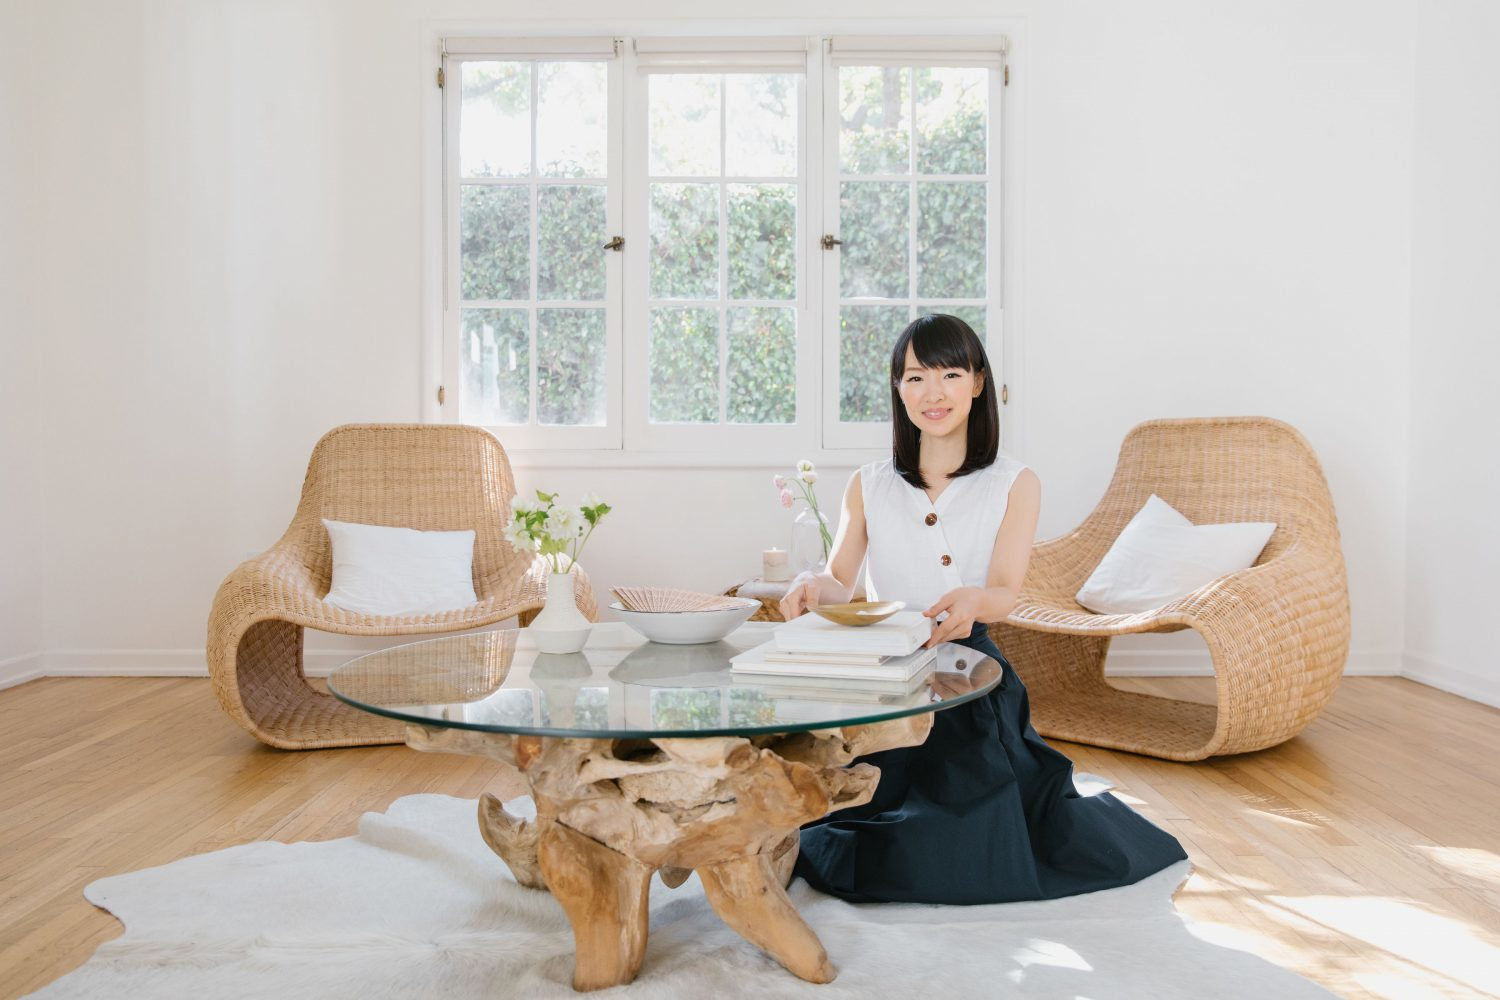 Marie Kondo in a beautiful minimal room